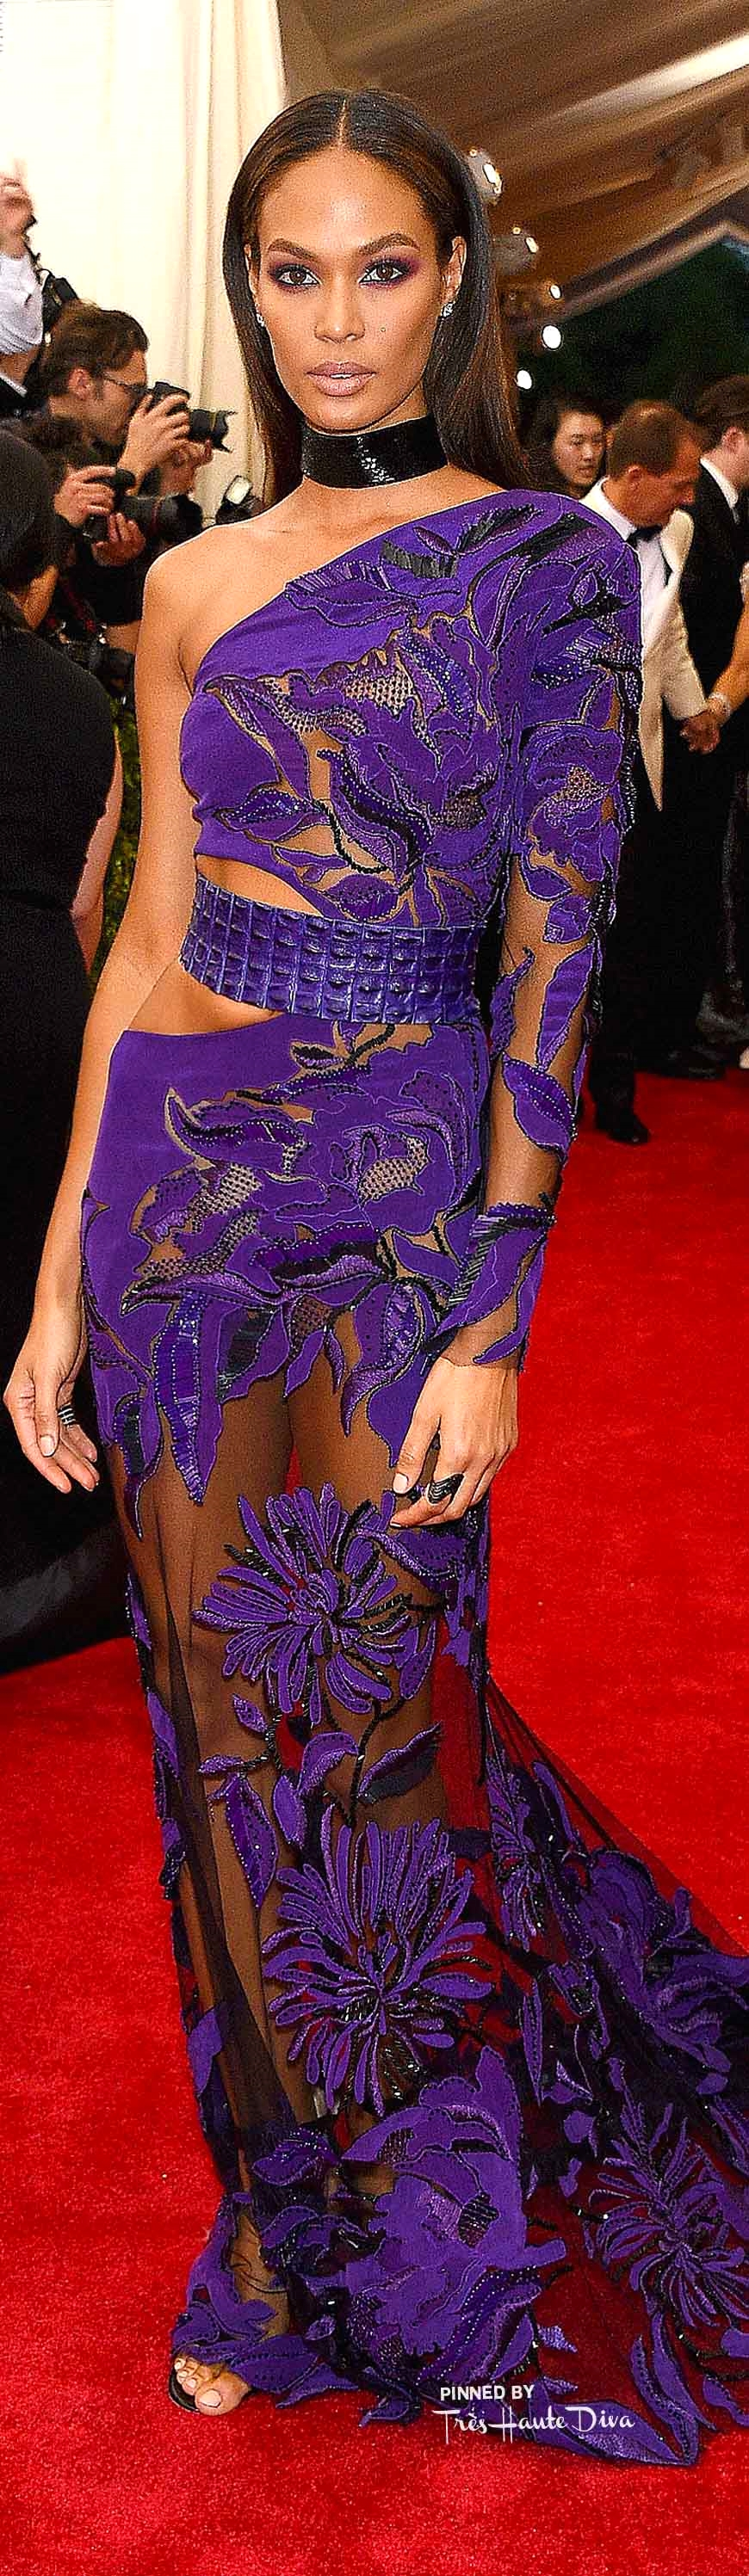 Joan Smalls in Roberto Cavalli & Chopard Jewelry Getty Images/ Larry Busacca